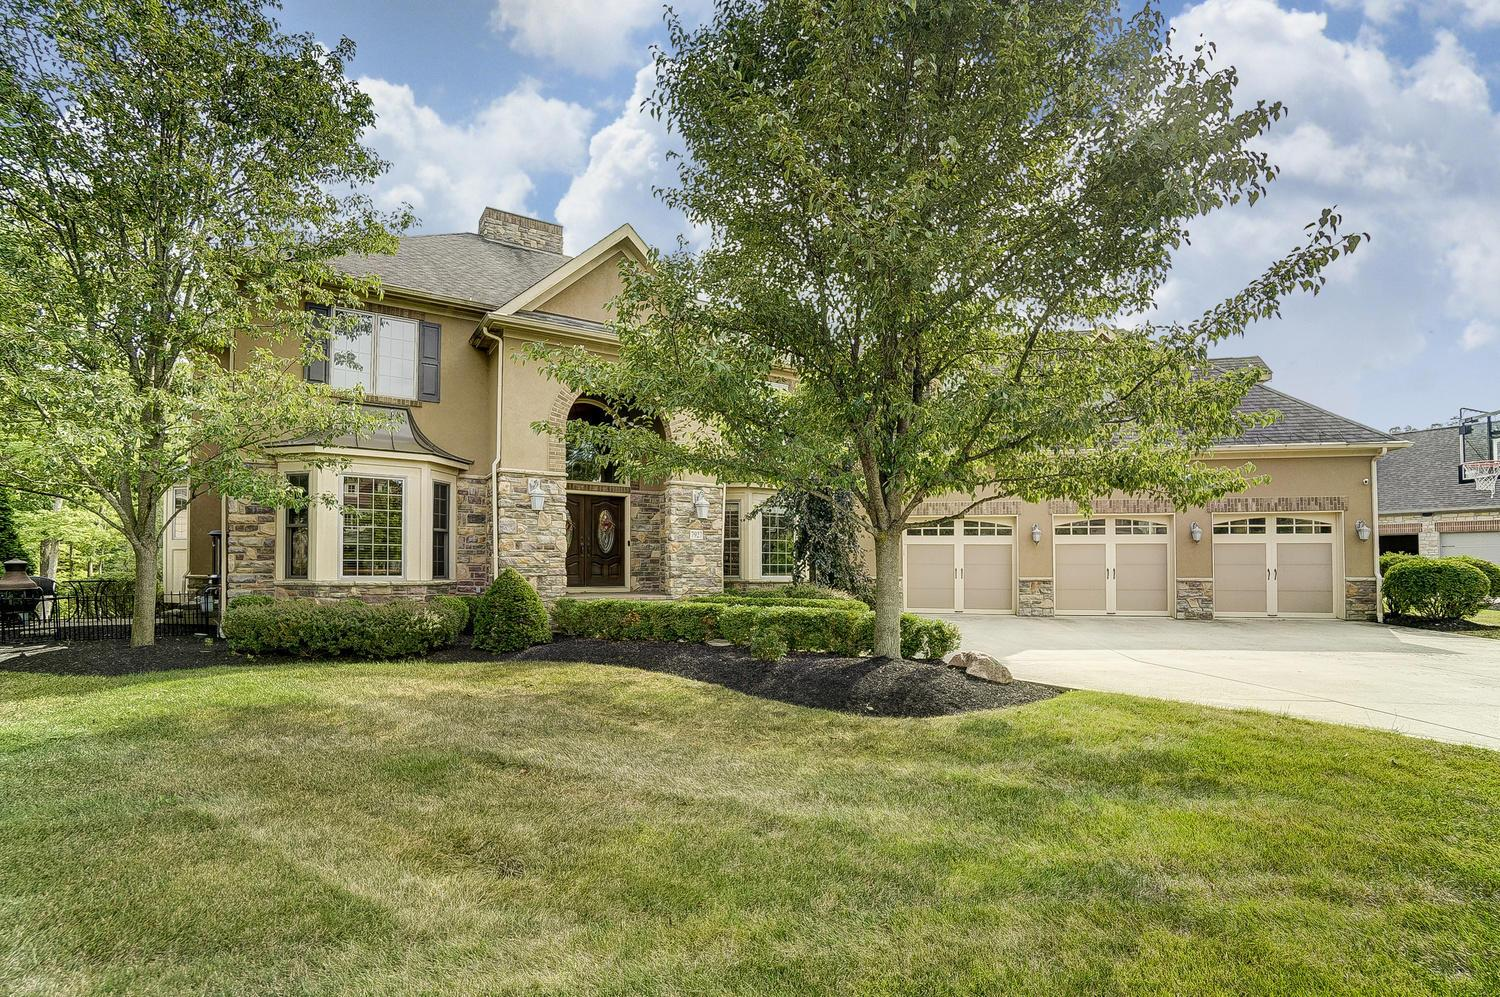 7927 Ginger Place, Dublin, Ohio 43017, 5 Bedrooms Bedrooms, ,6 BathroomsBathrooms,Residential,For Sale,Ginger,220030521